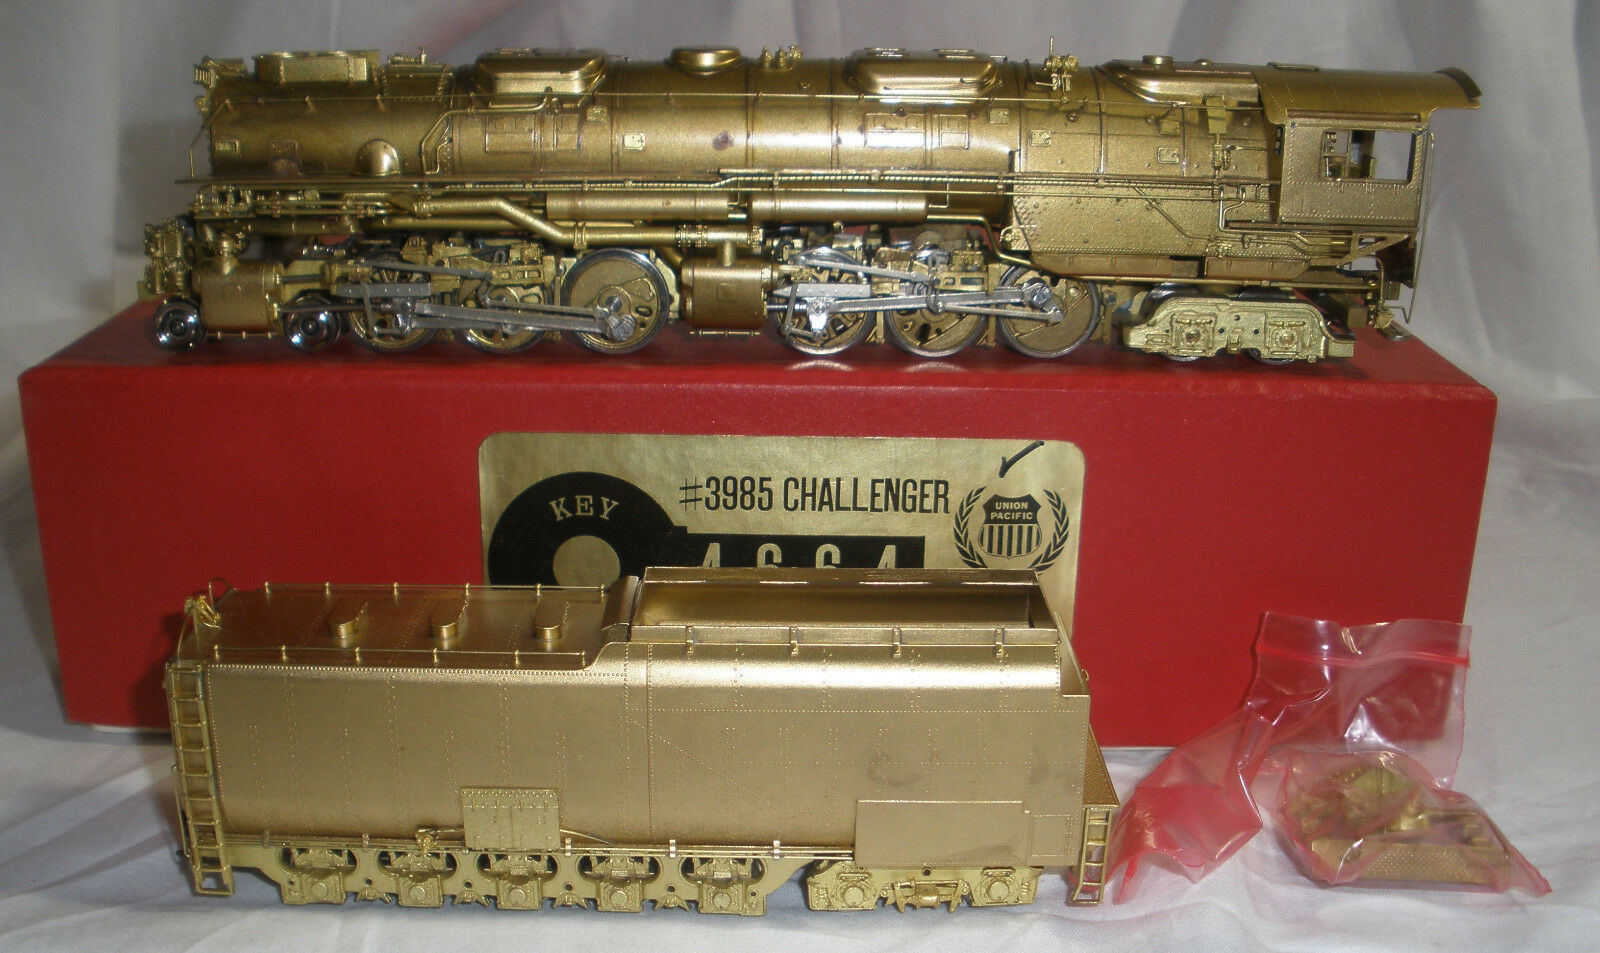 Union Pacific 4-6-6-4 Challanger Key Imports w box nice condition